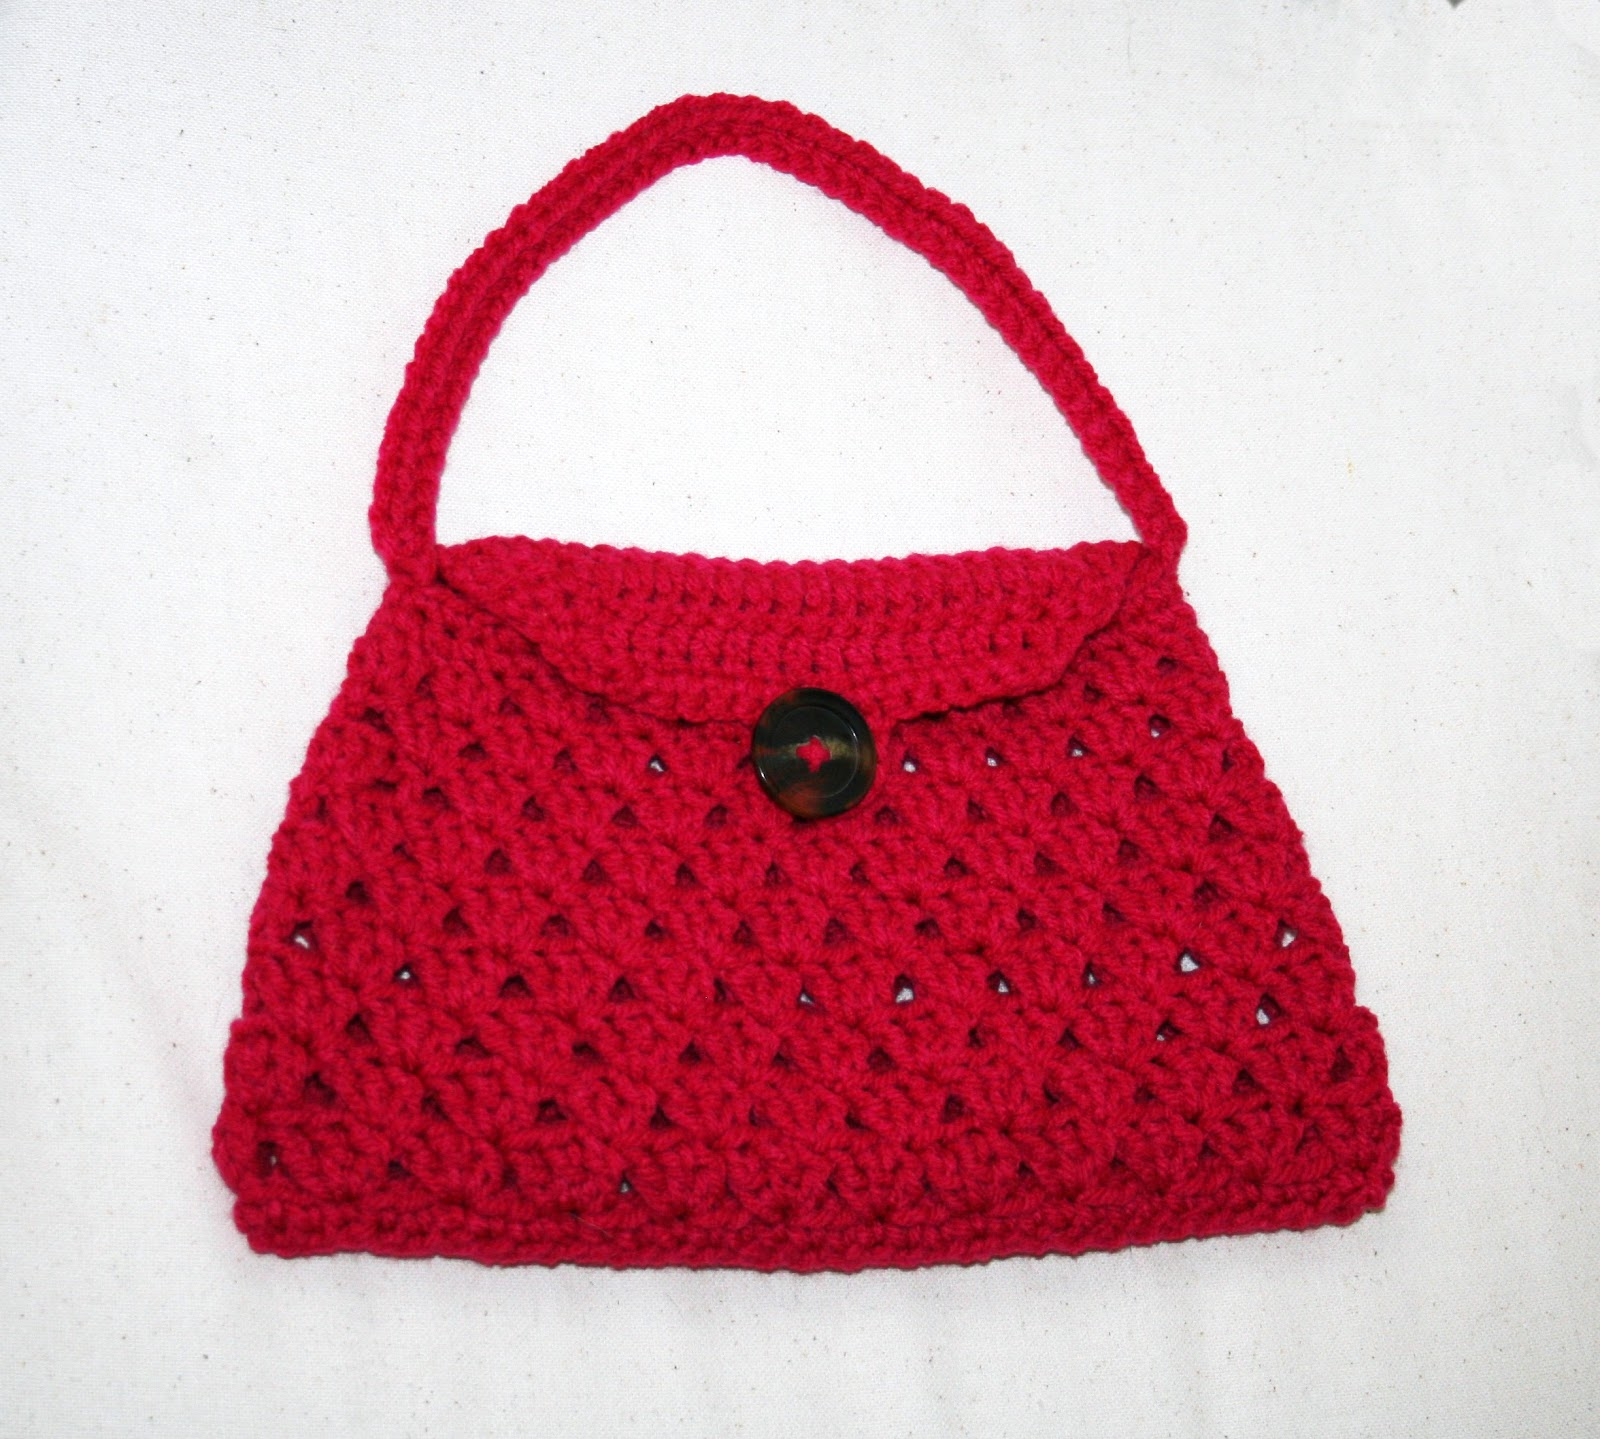 Crocheting Purses : Tampa Bay Crochet: Free Crochet Pattern: Stylish Crochet Handbag